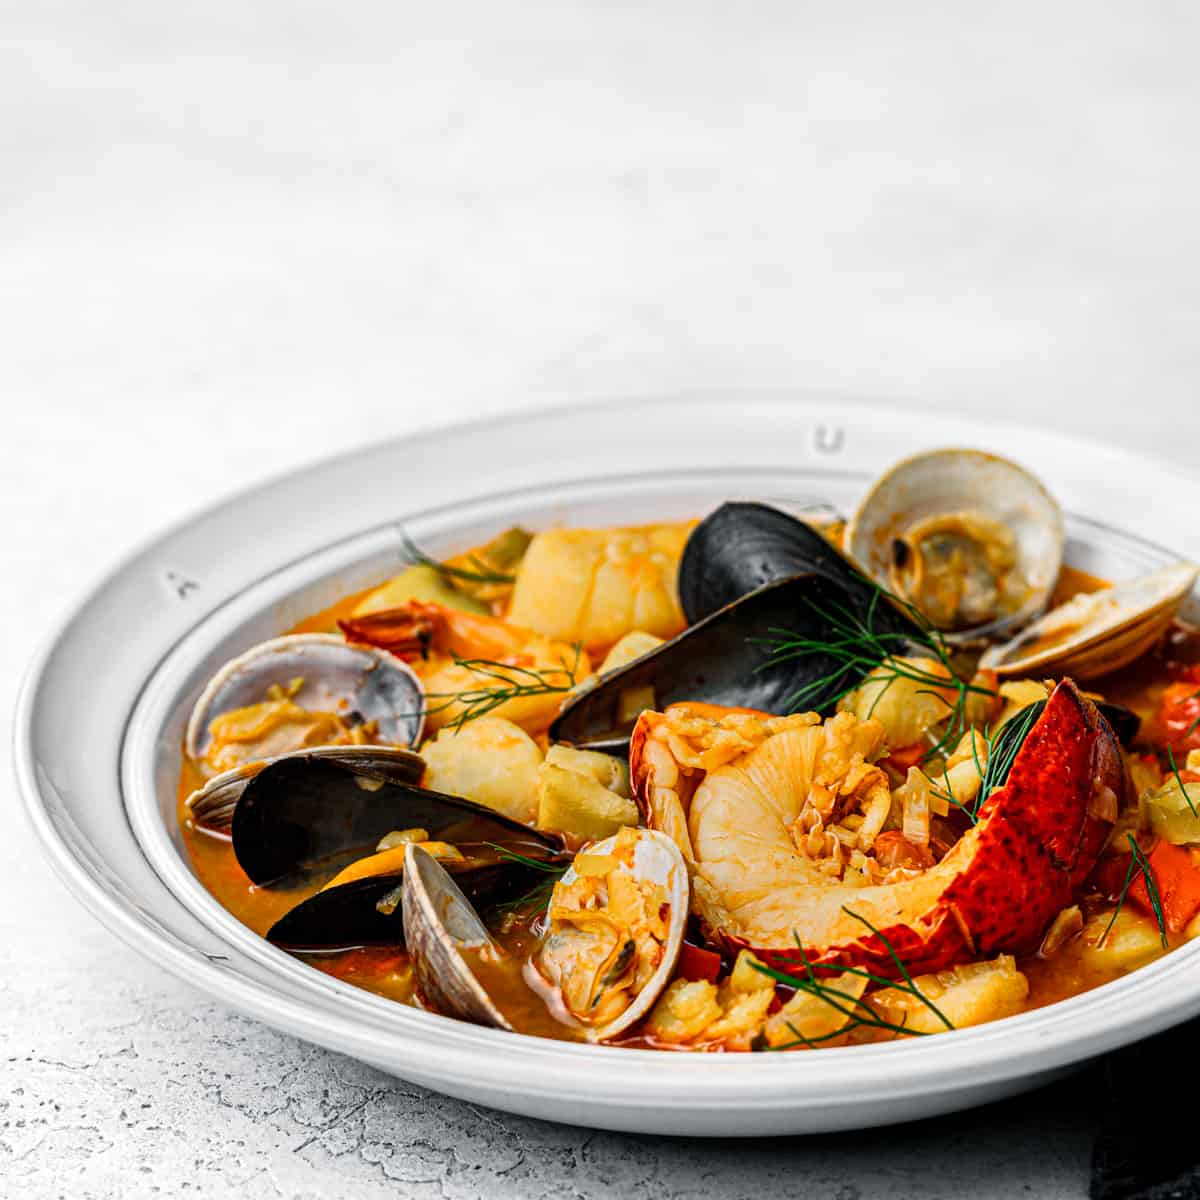 Fish stew with mussel, lobster, and shrimp.